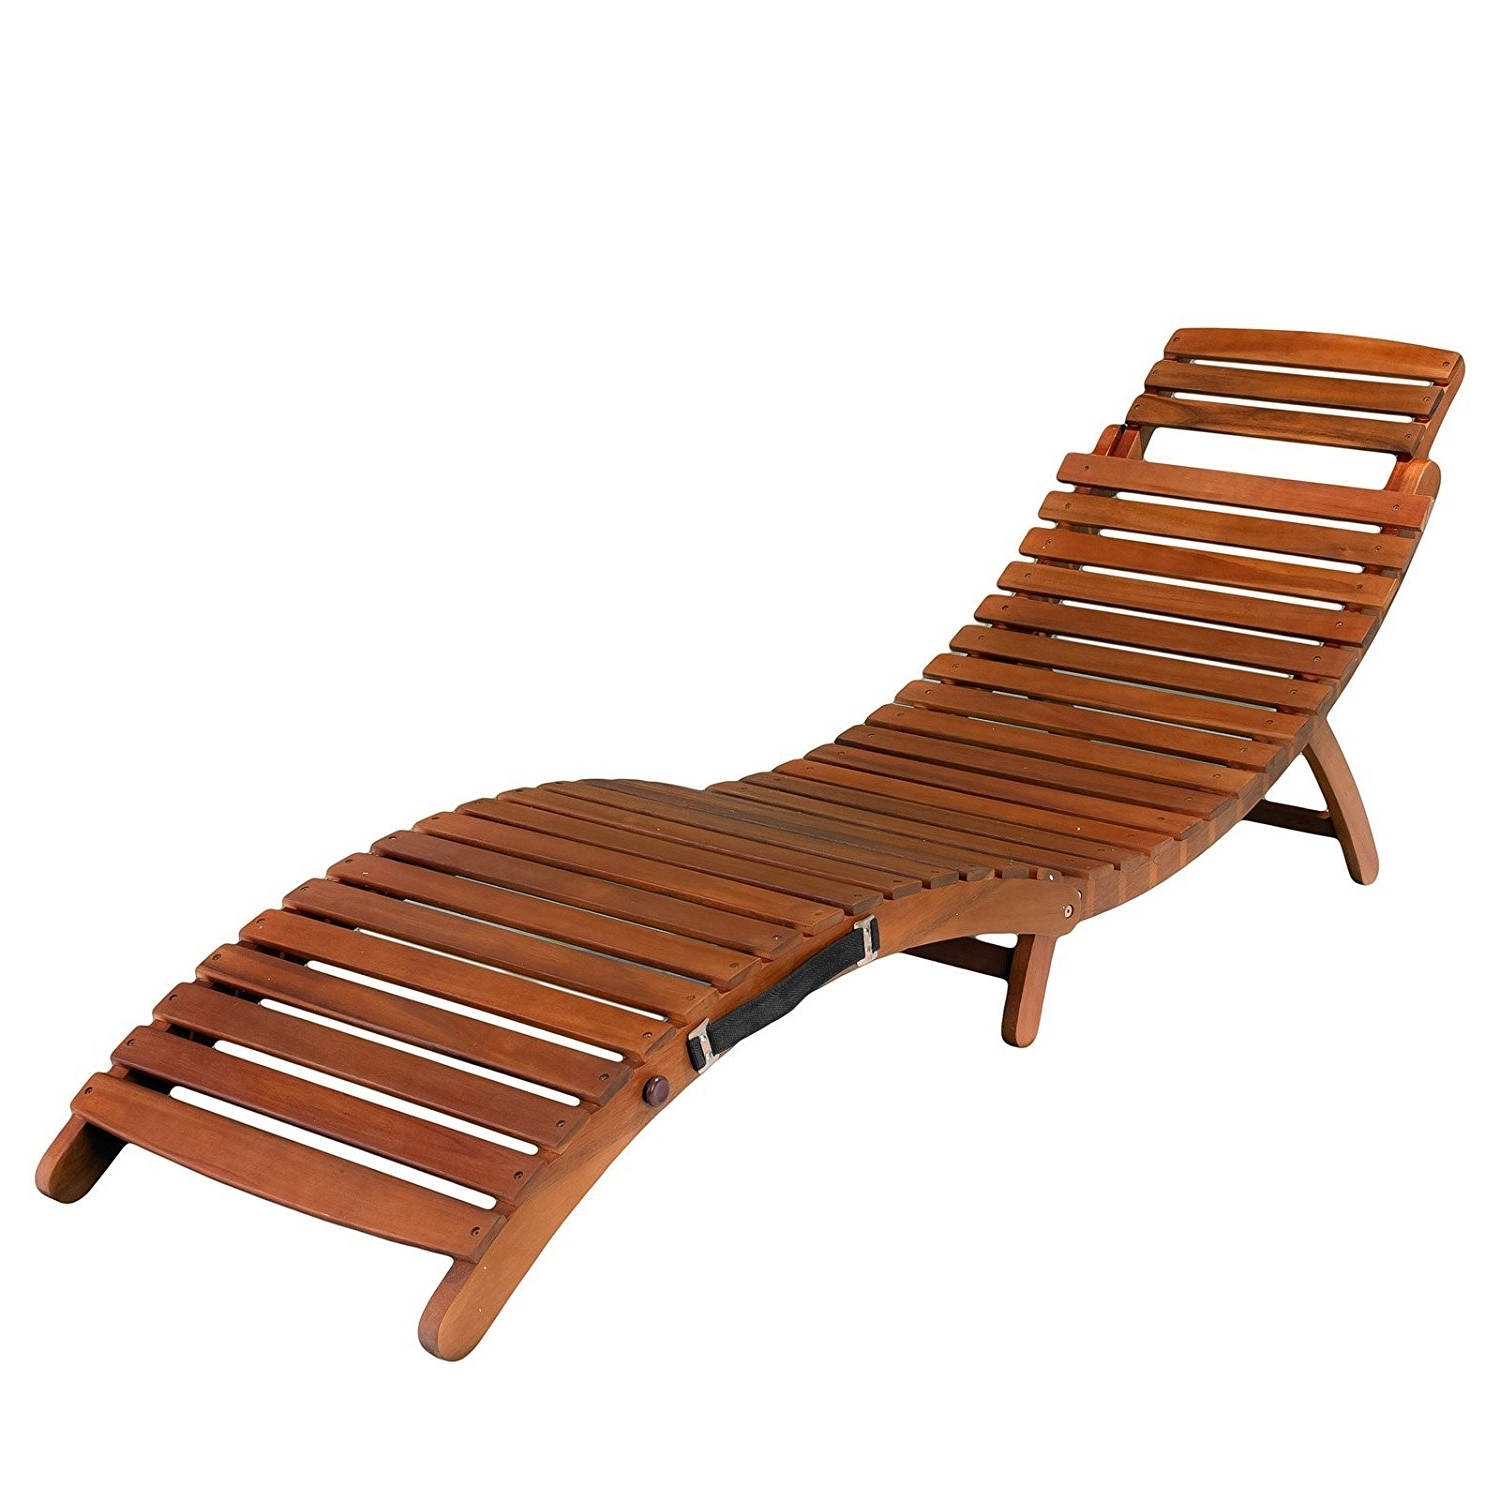 Trendy Amazon: Lahaina Outdoor Chaise Lounge: Garden & Outdoor Inside Foldable Chaise Lounge Outdoor Chairs (View 15 of 15)